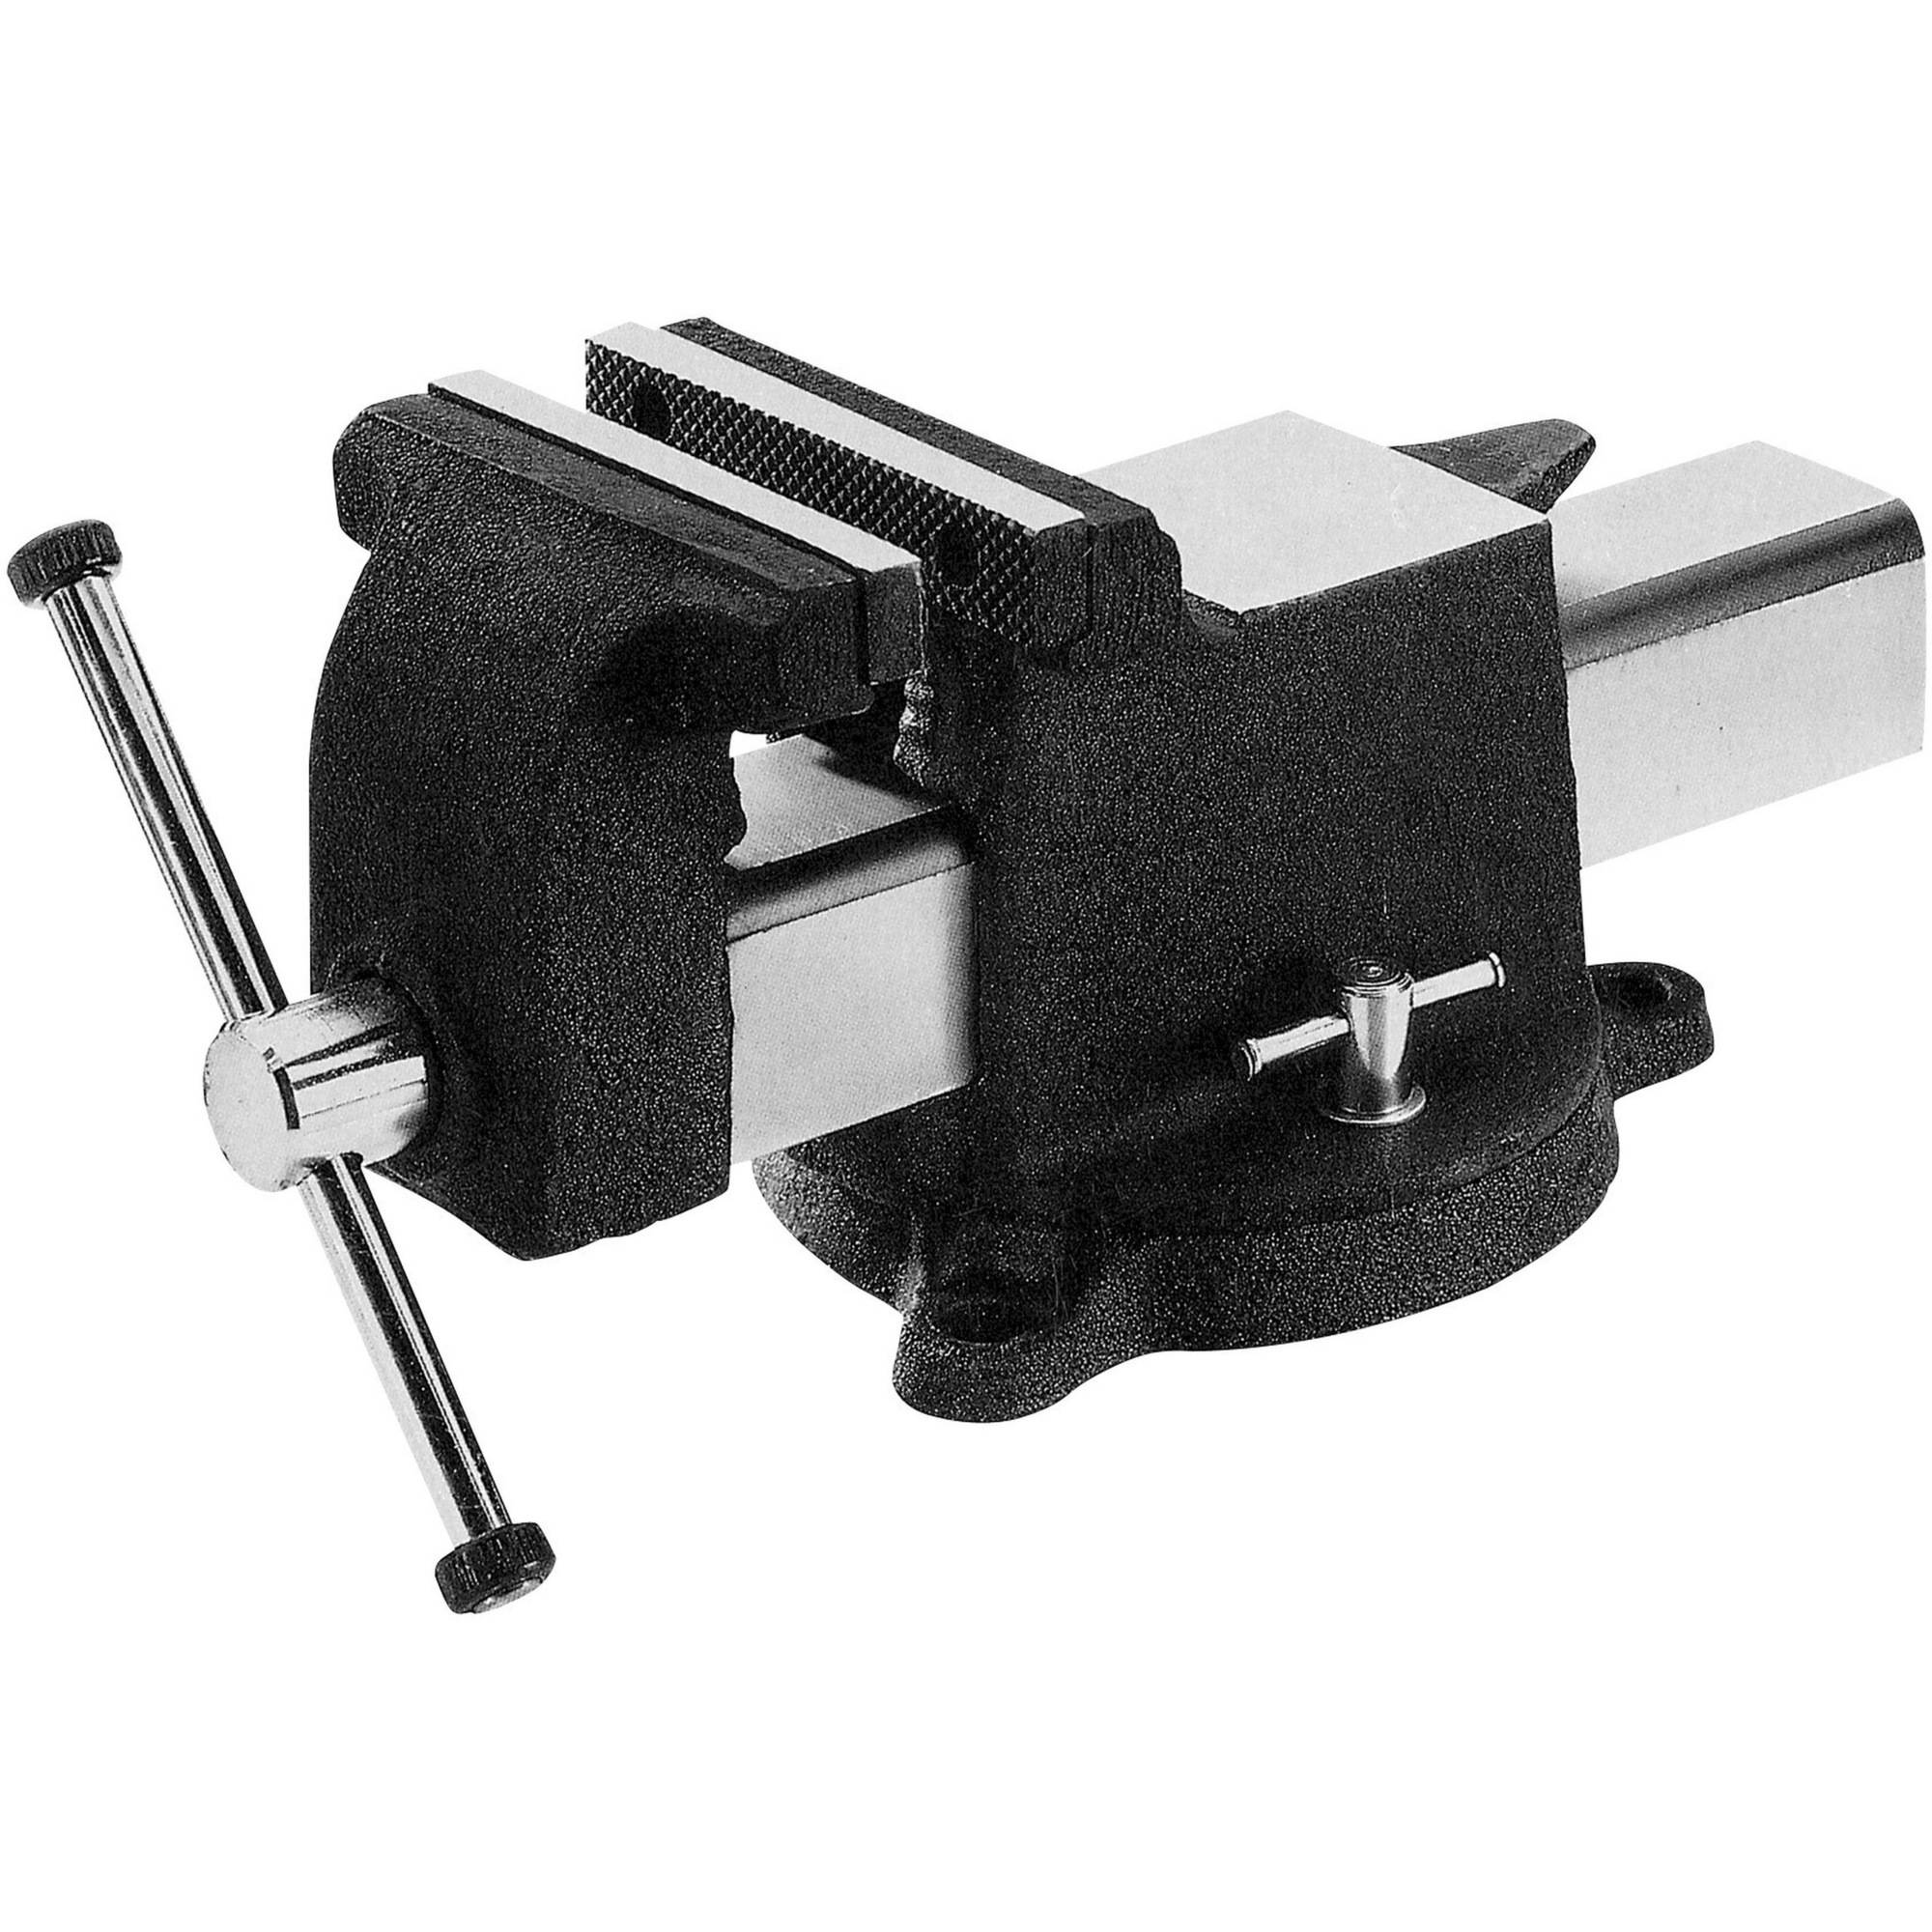 Yost 910-As All Steel Utility Combination Pipe and Bench Vise by Yost Vises